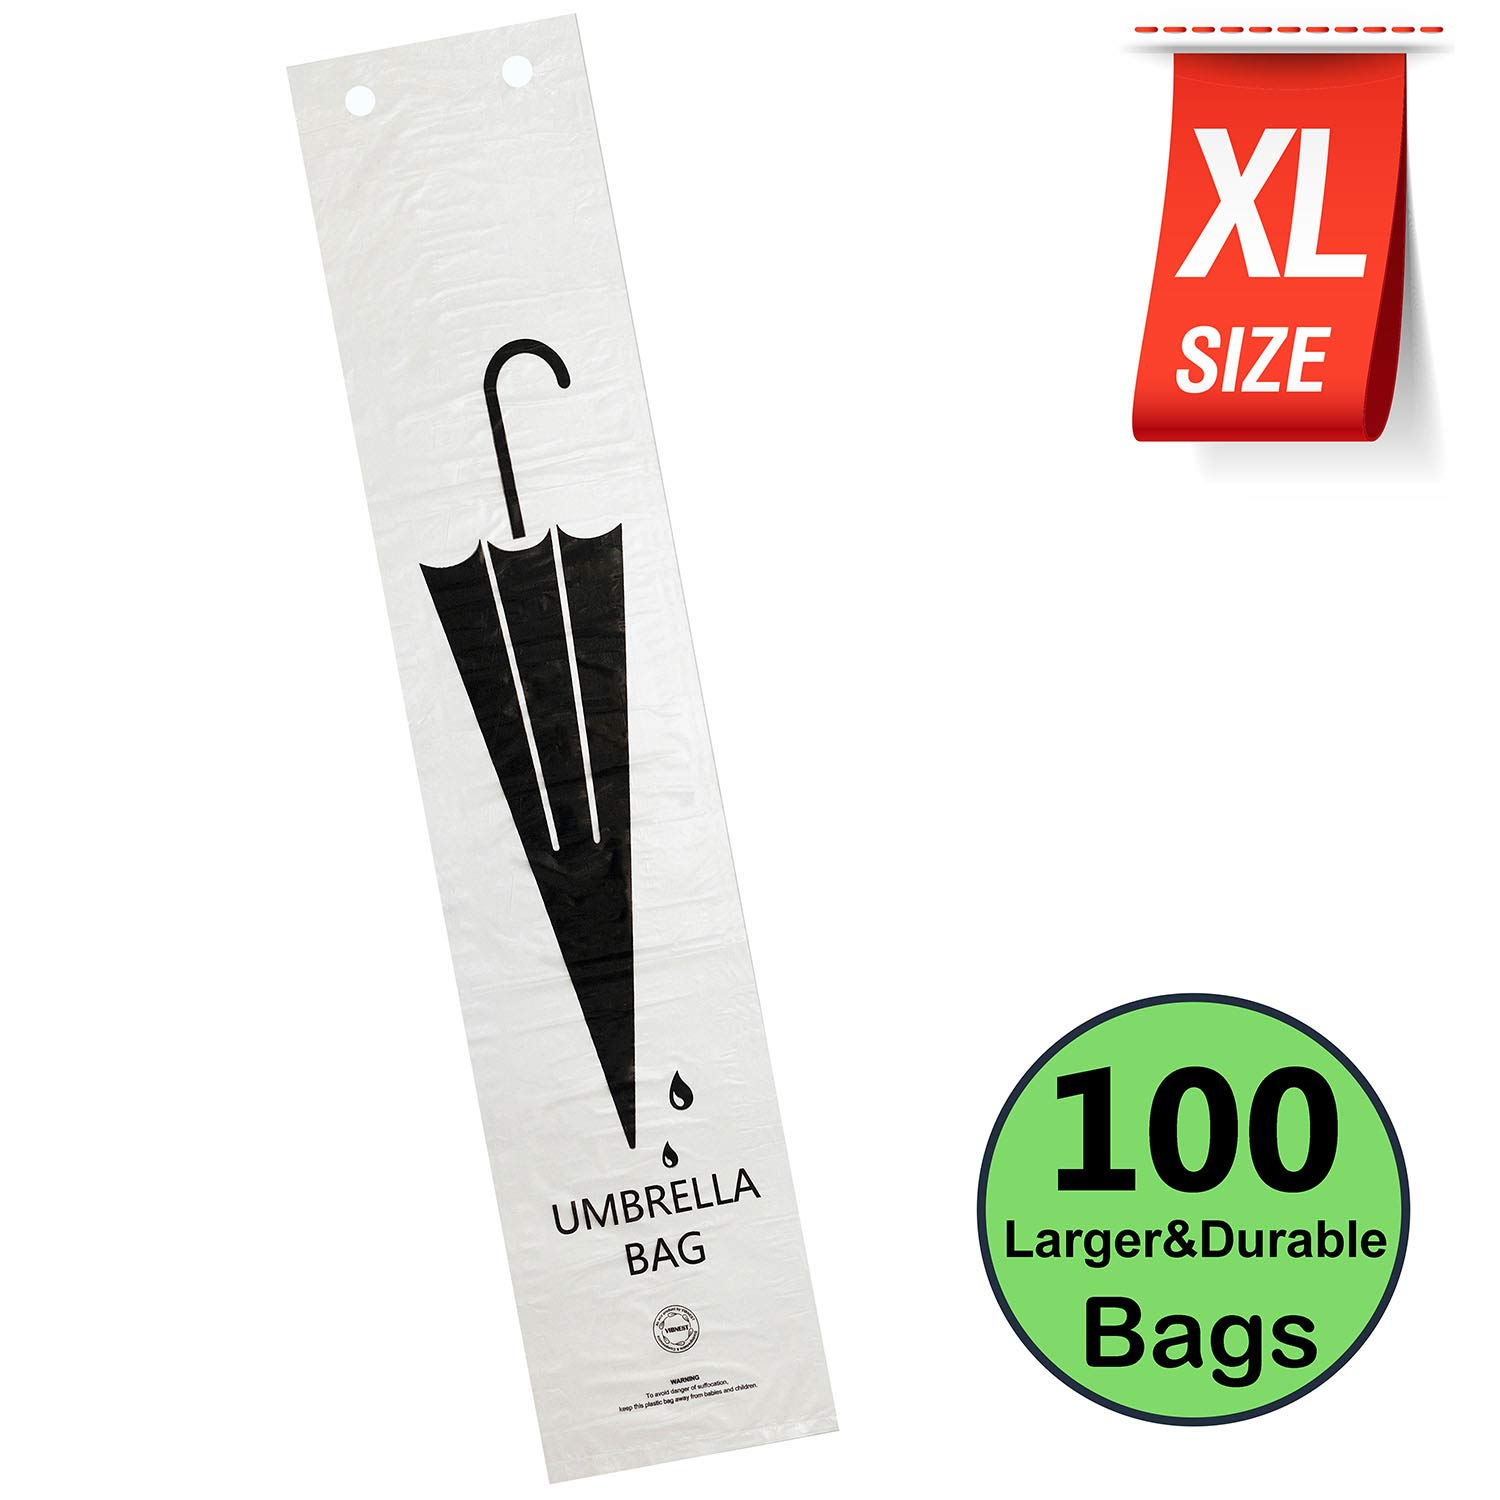 VIBNEST Wet Umbrella Bags XL-Size Pack of 100 for Stand Holders and Refills Fits Most Stands Plastic Replacement Bag Refills by VIBNEST